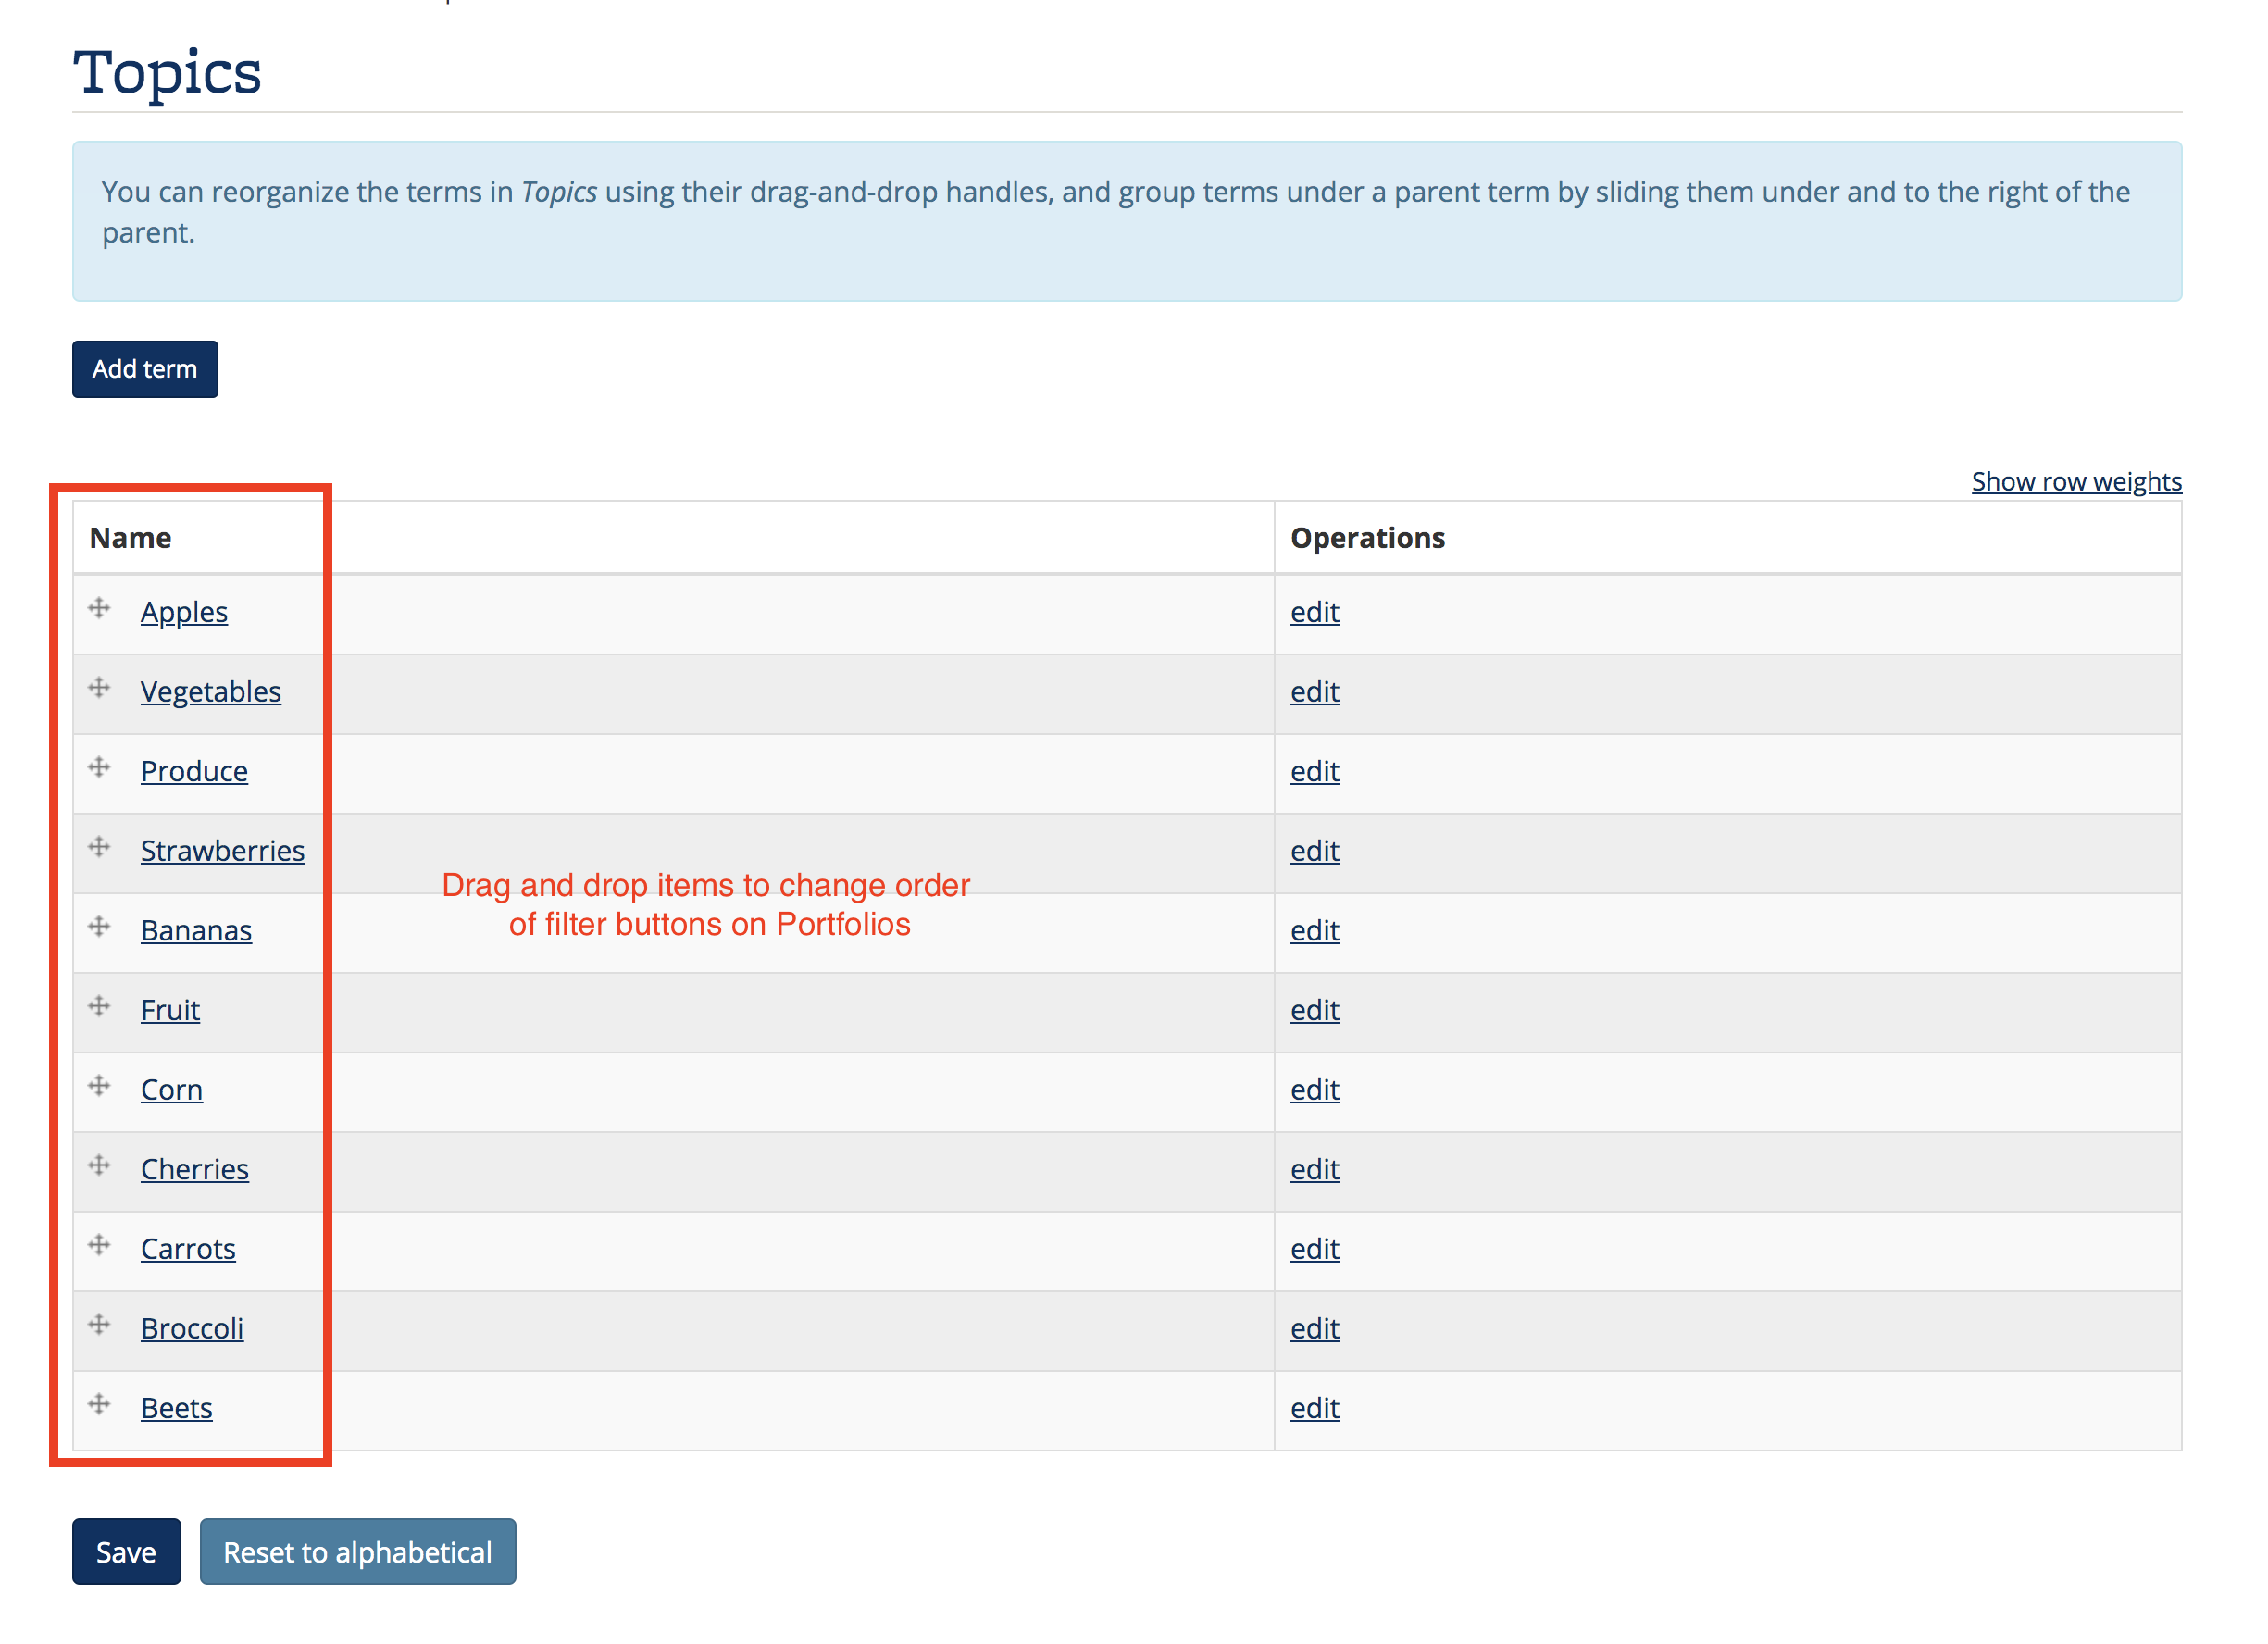 Screenshot of Topics categories, where you can drag and drop the items to change the order